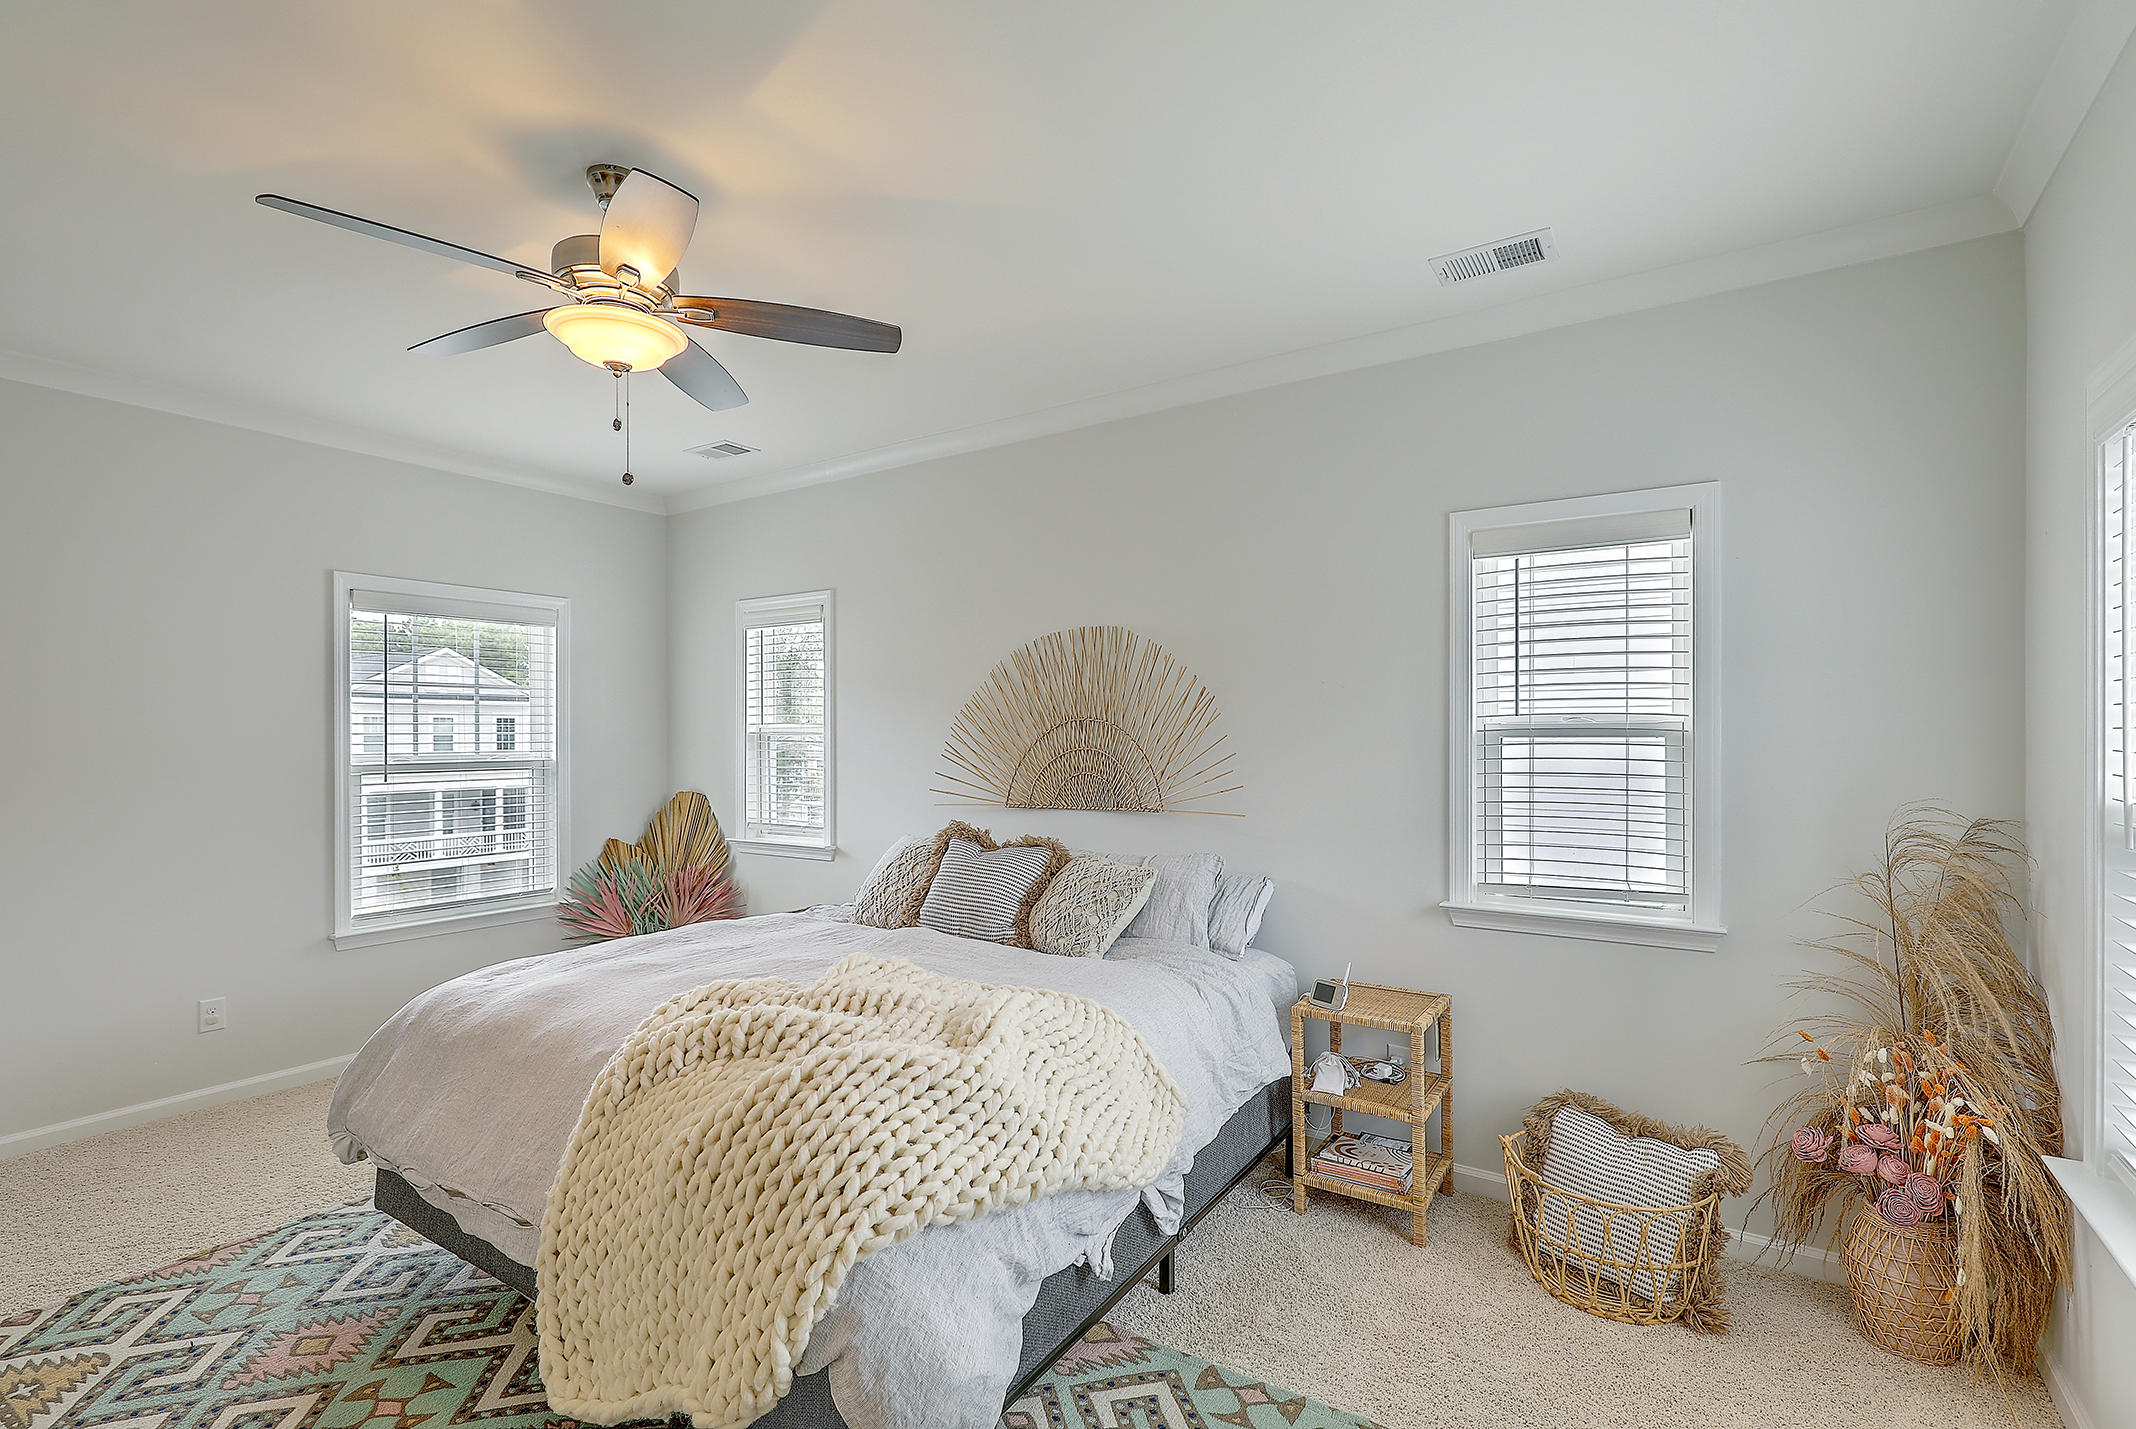 Stratton by the Sound Homes For Sale - 3473 Saltflat, Mount Pleasant, SC - 39